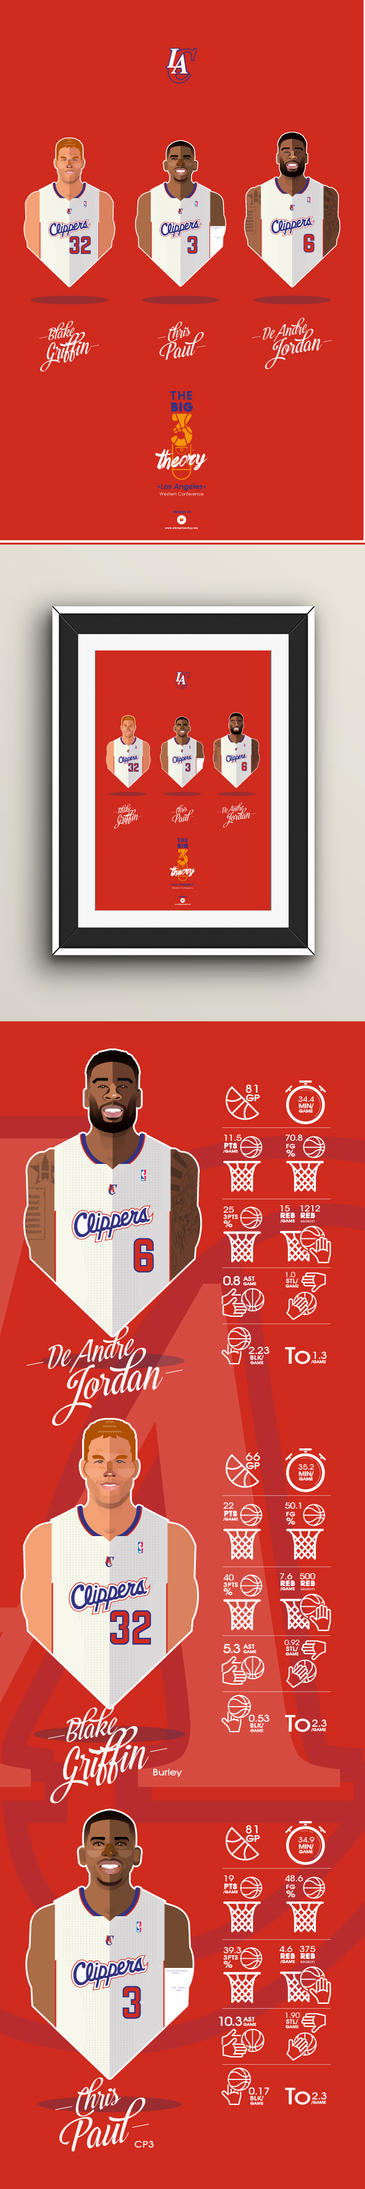 Bigmen02-clippers by 2m-at-work